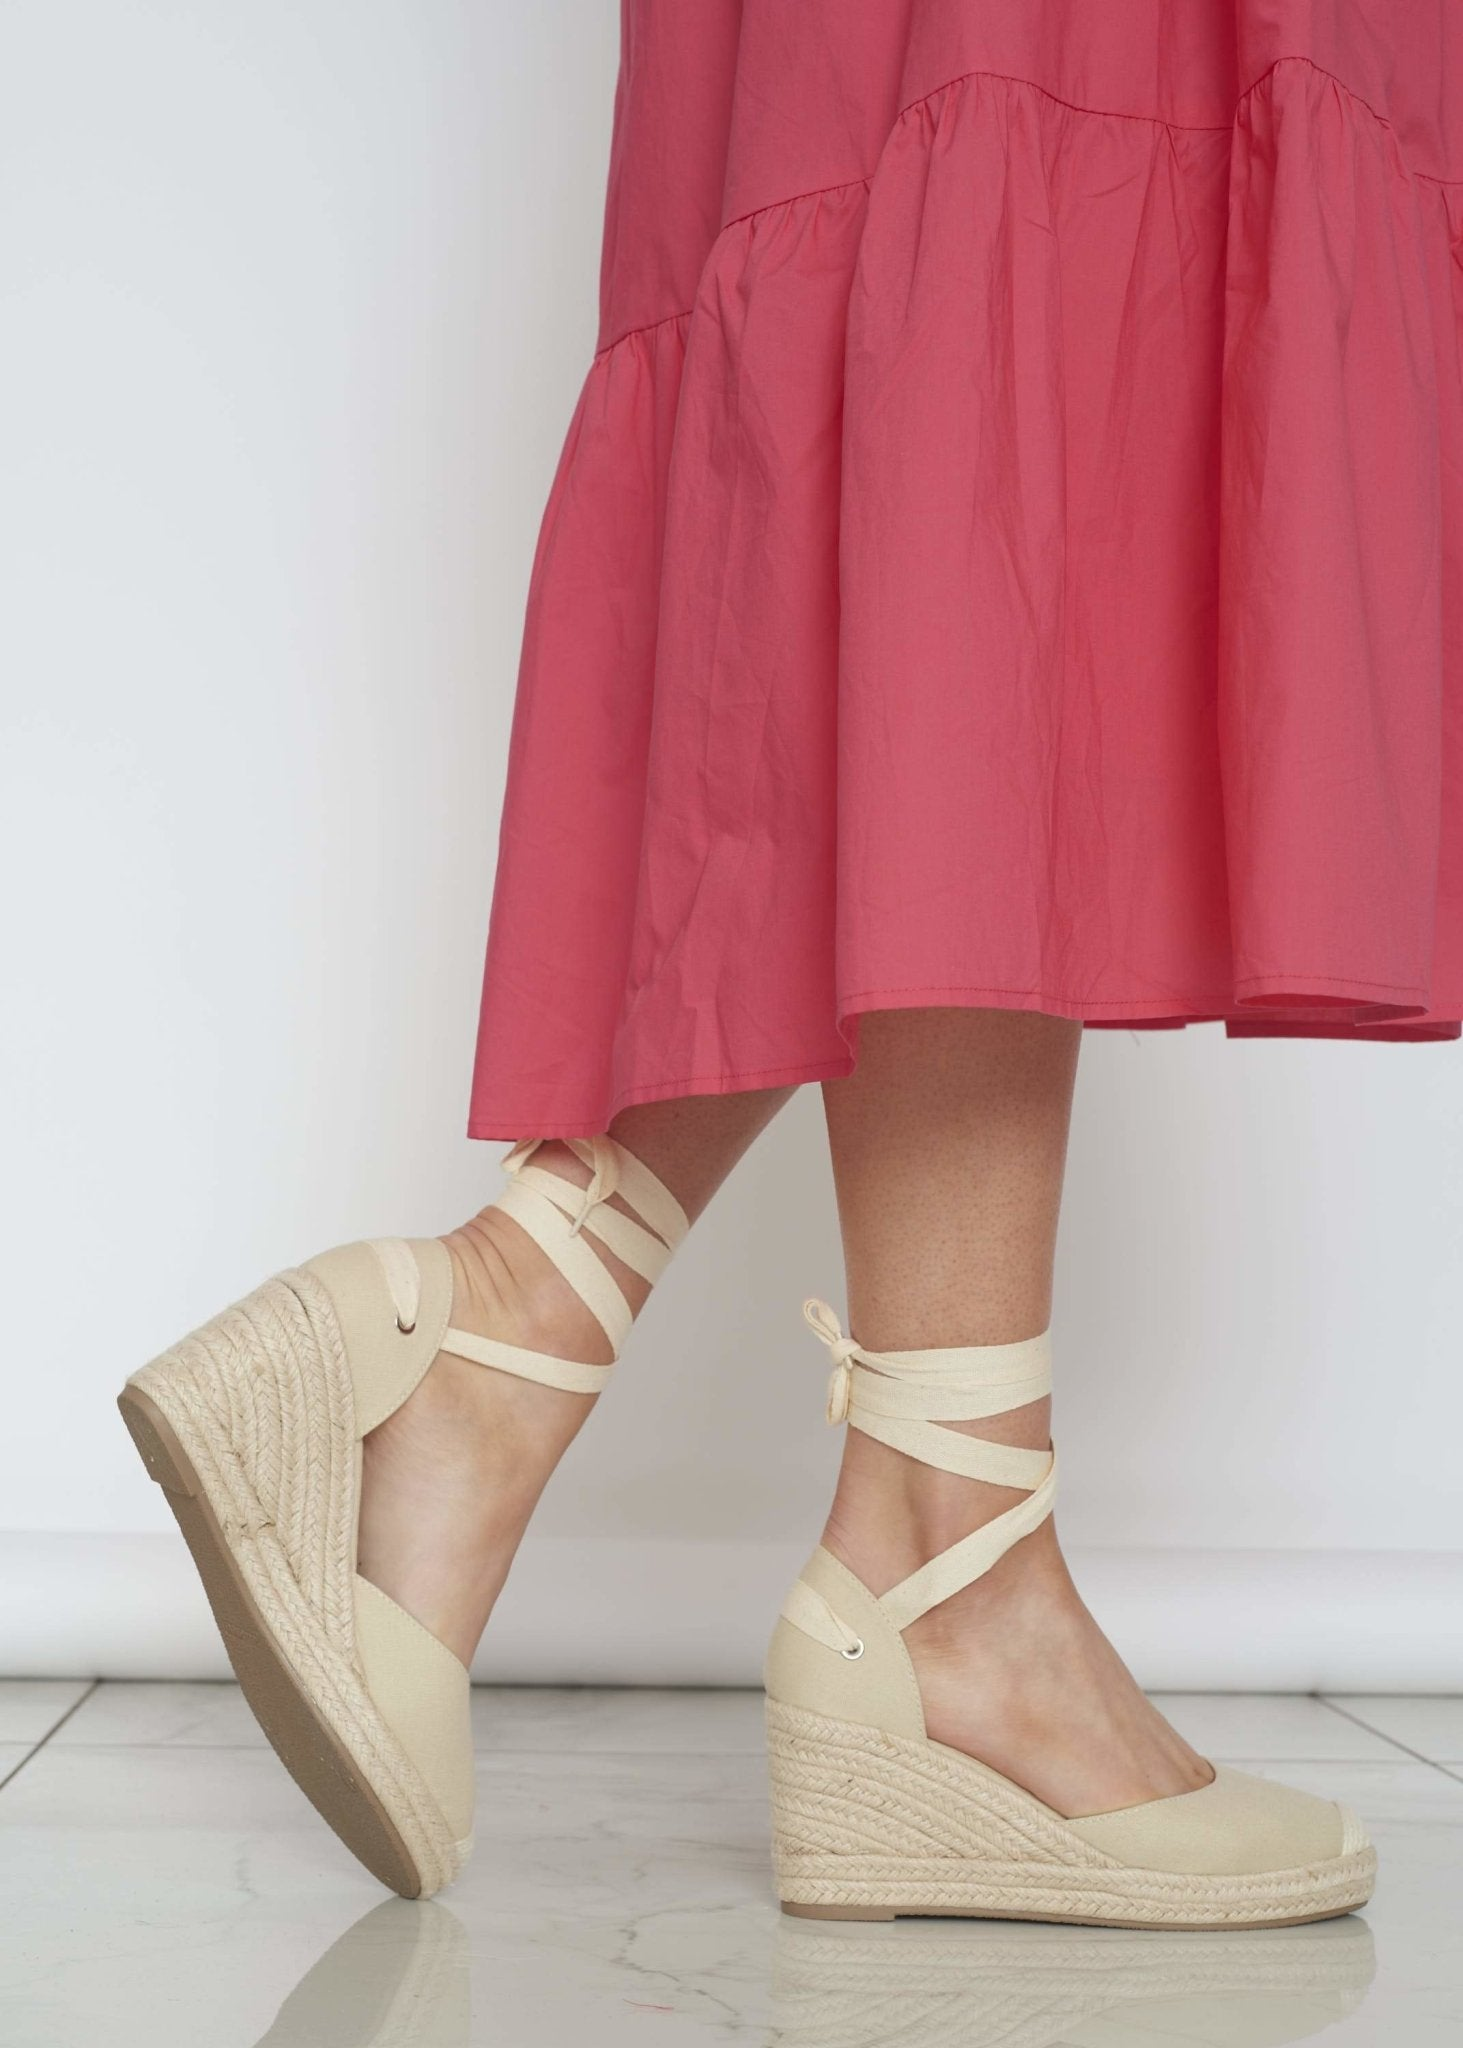 Priya Tie Wedge In Neutral - The Walk in Wardrobe